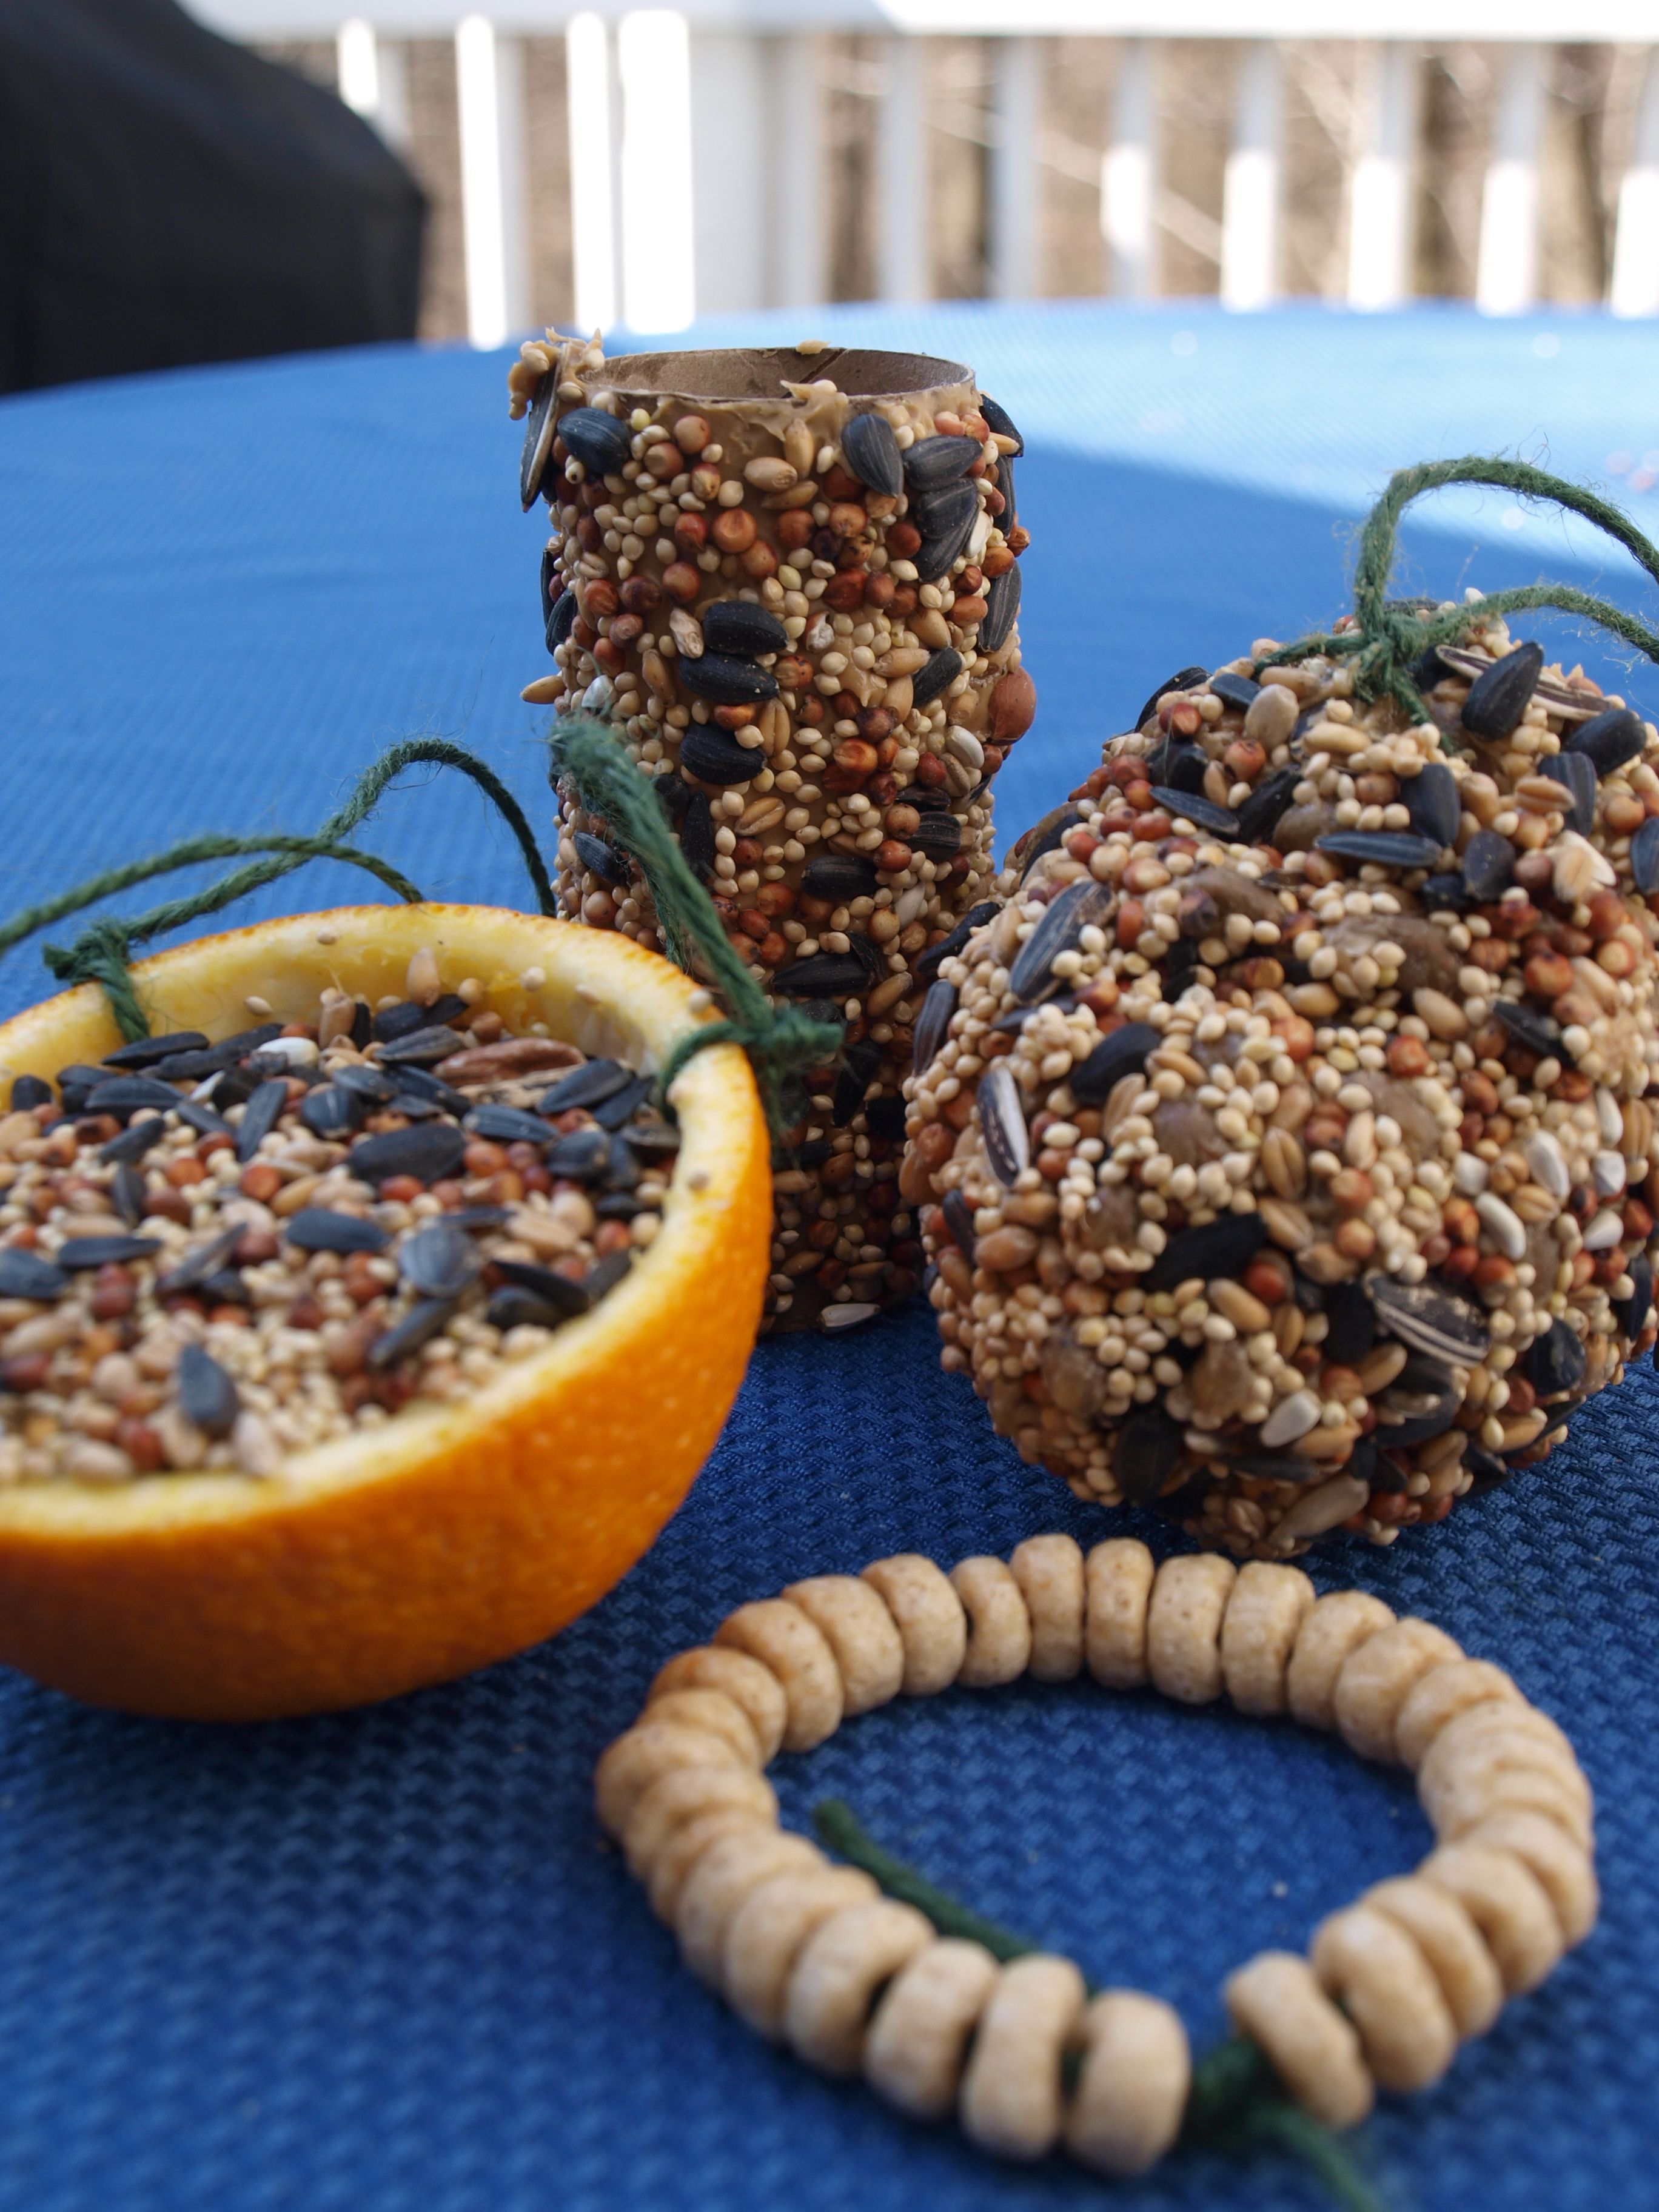 Easy biodegradable bird feeders fun crafts for kids